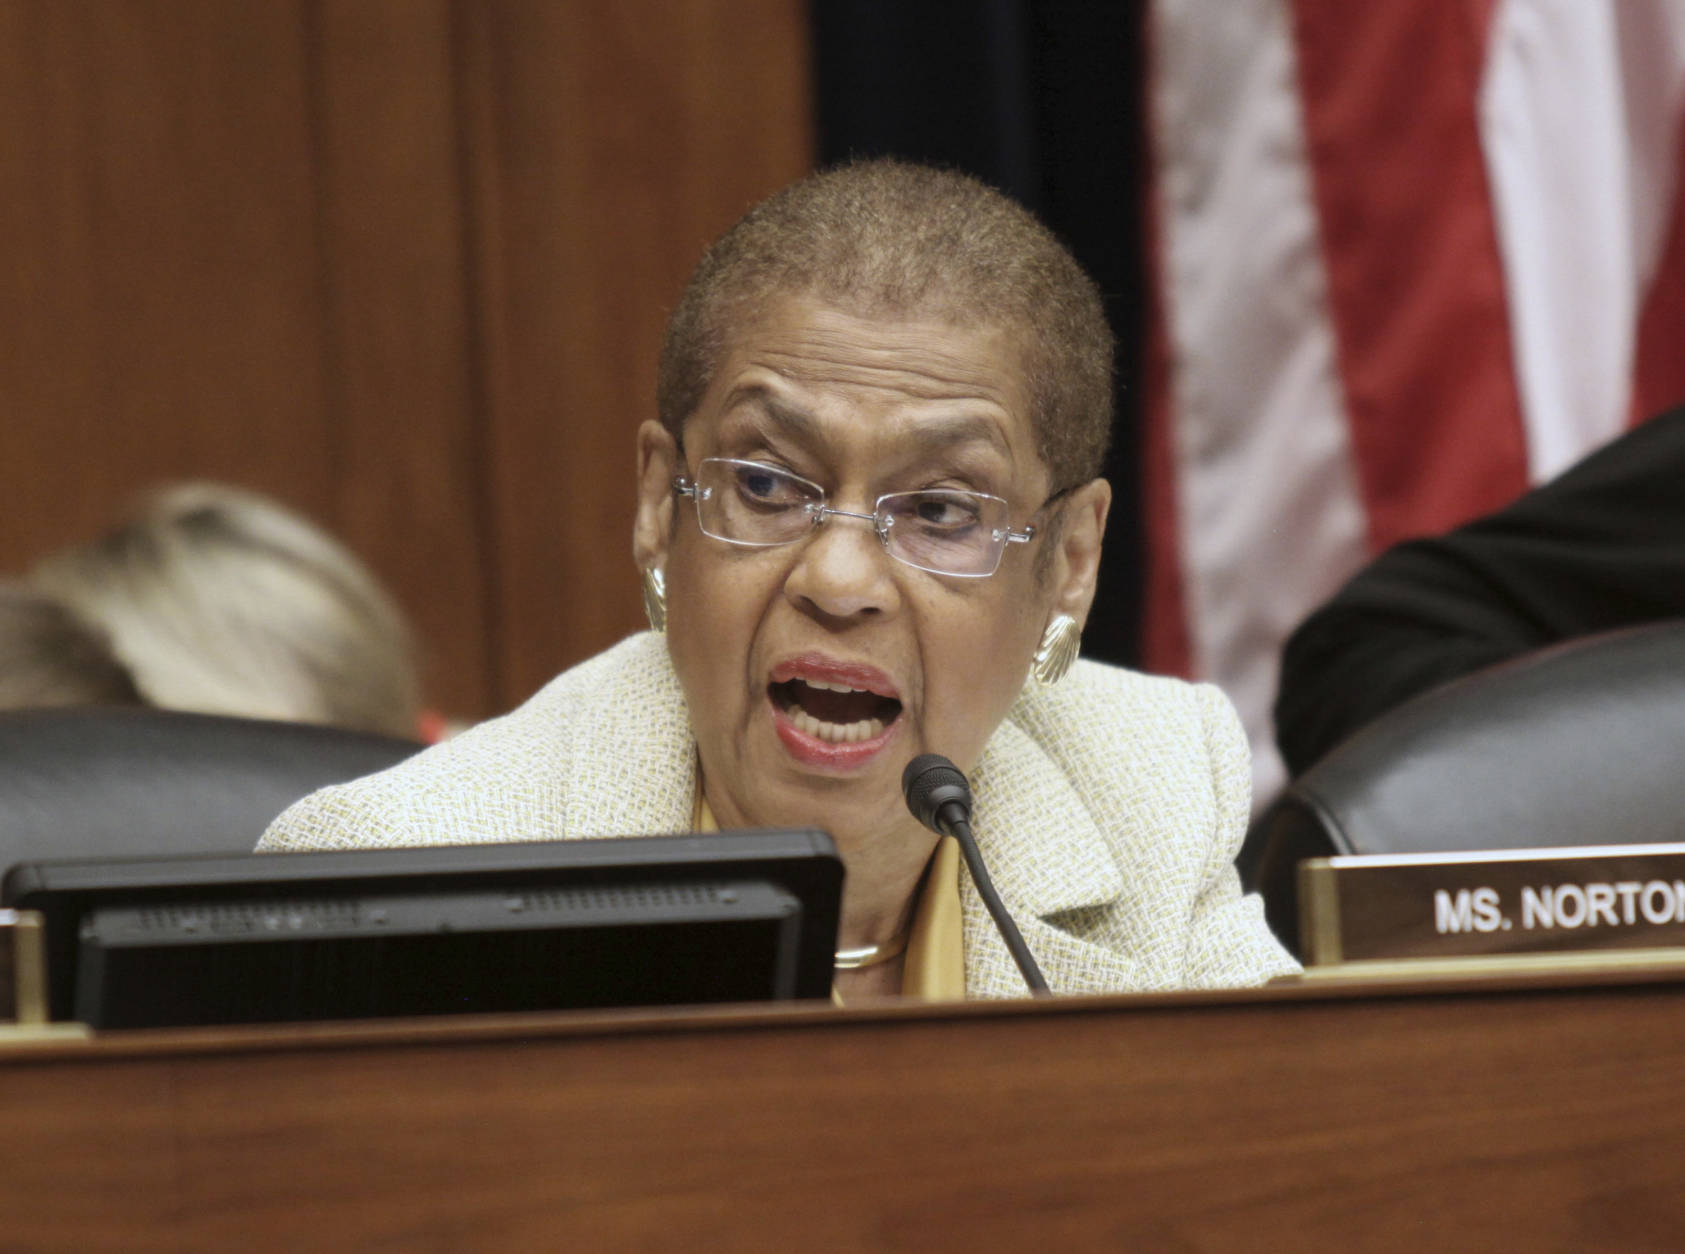 FILE - In this June 15, 2016 file photo, Del. Eleanor Holmes Norton, D-D.C. speaks on Capitol Hill in Washington.  (AP Photo/Lauren Victoria Burke, File)